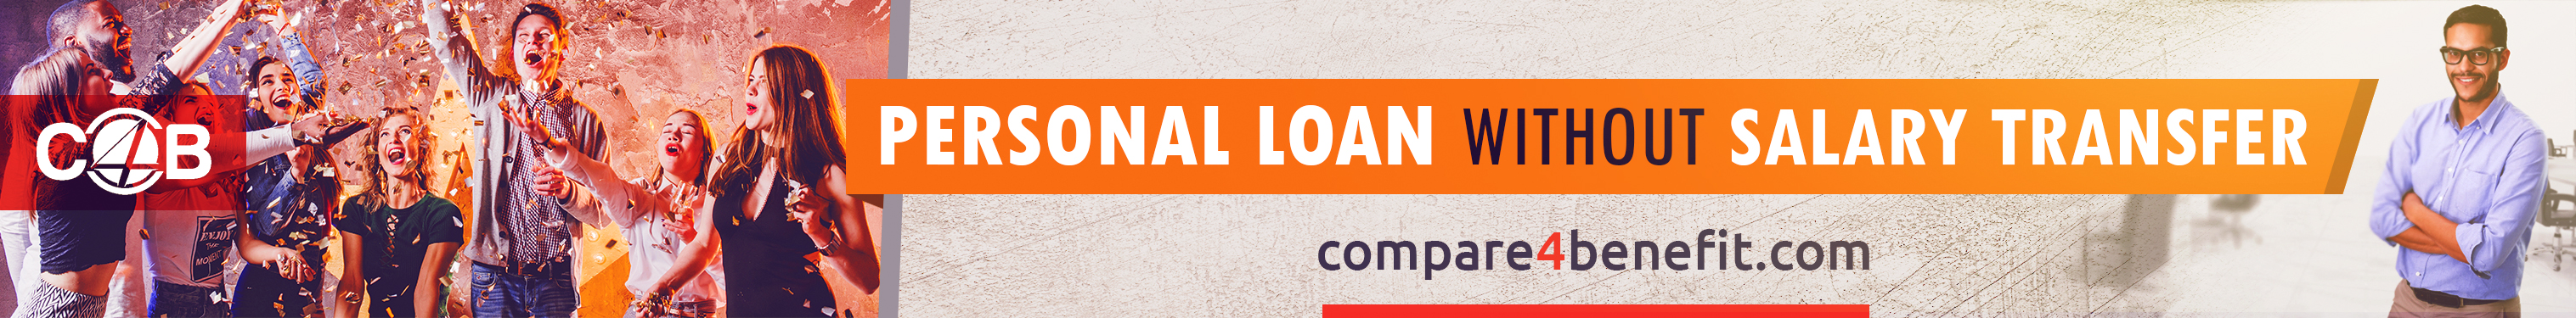 No salary transfer personal loan